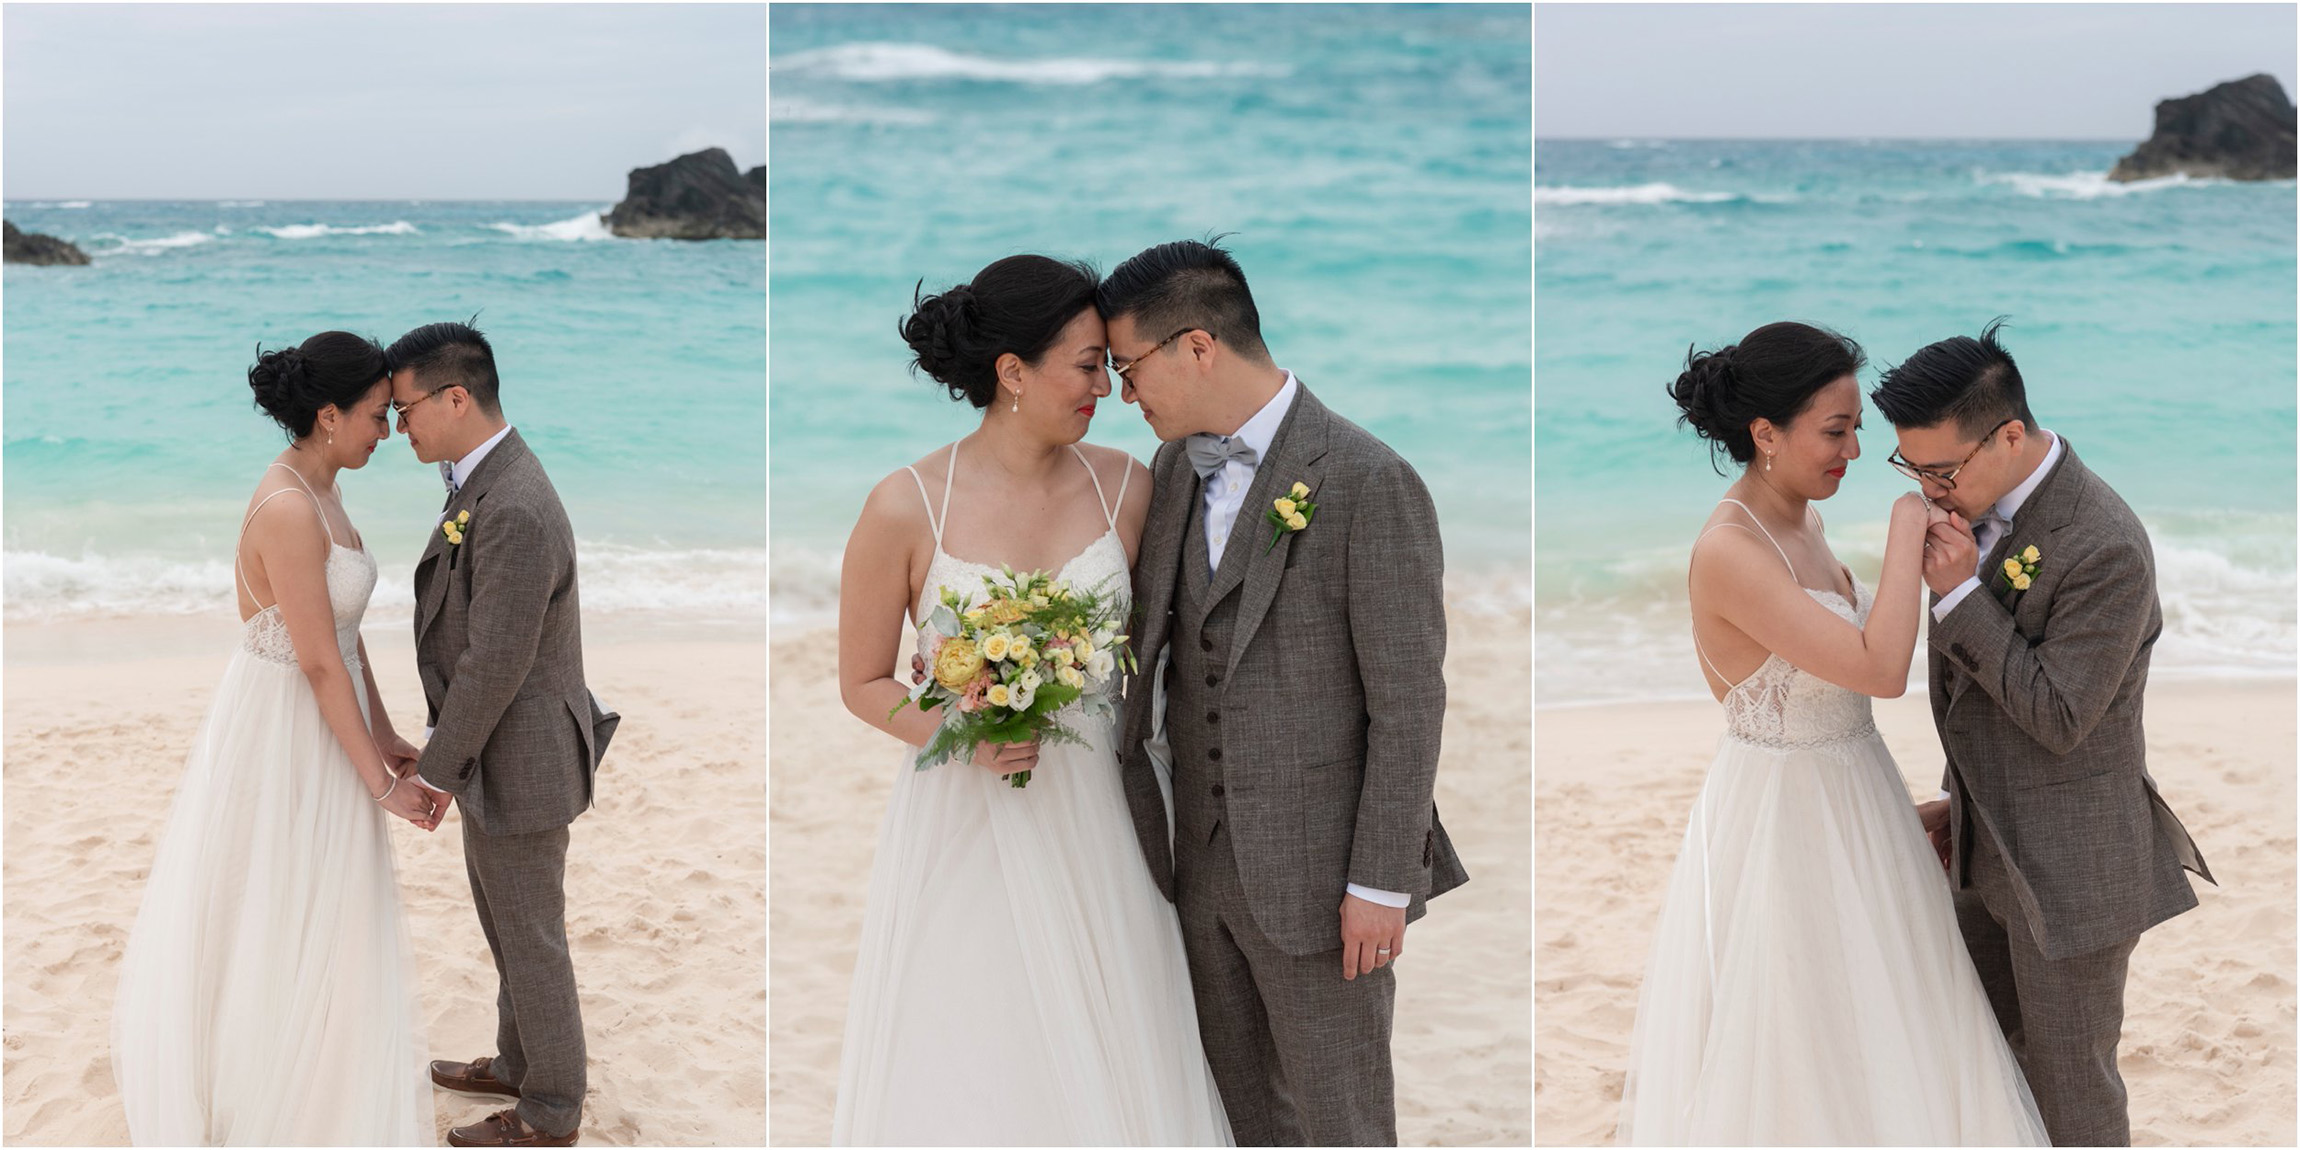 ©FianderFoto_Bermuda Wedding Photographer_Fairmont Southampton_Amy_Wilson_097.jpg